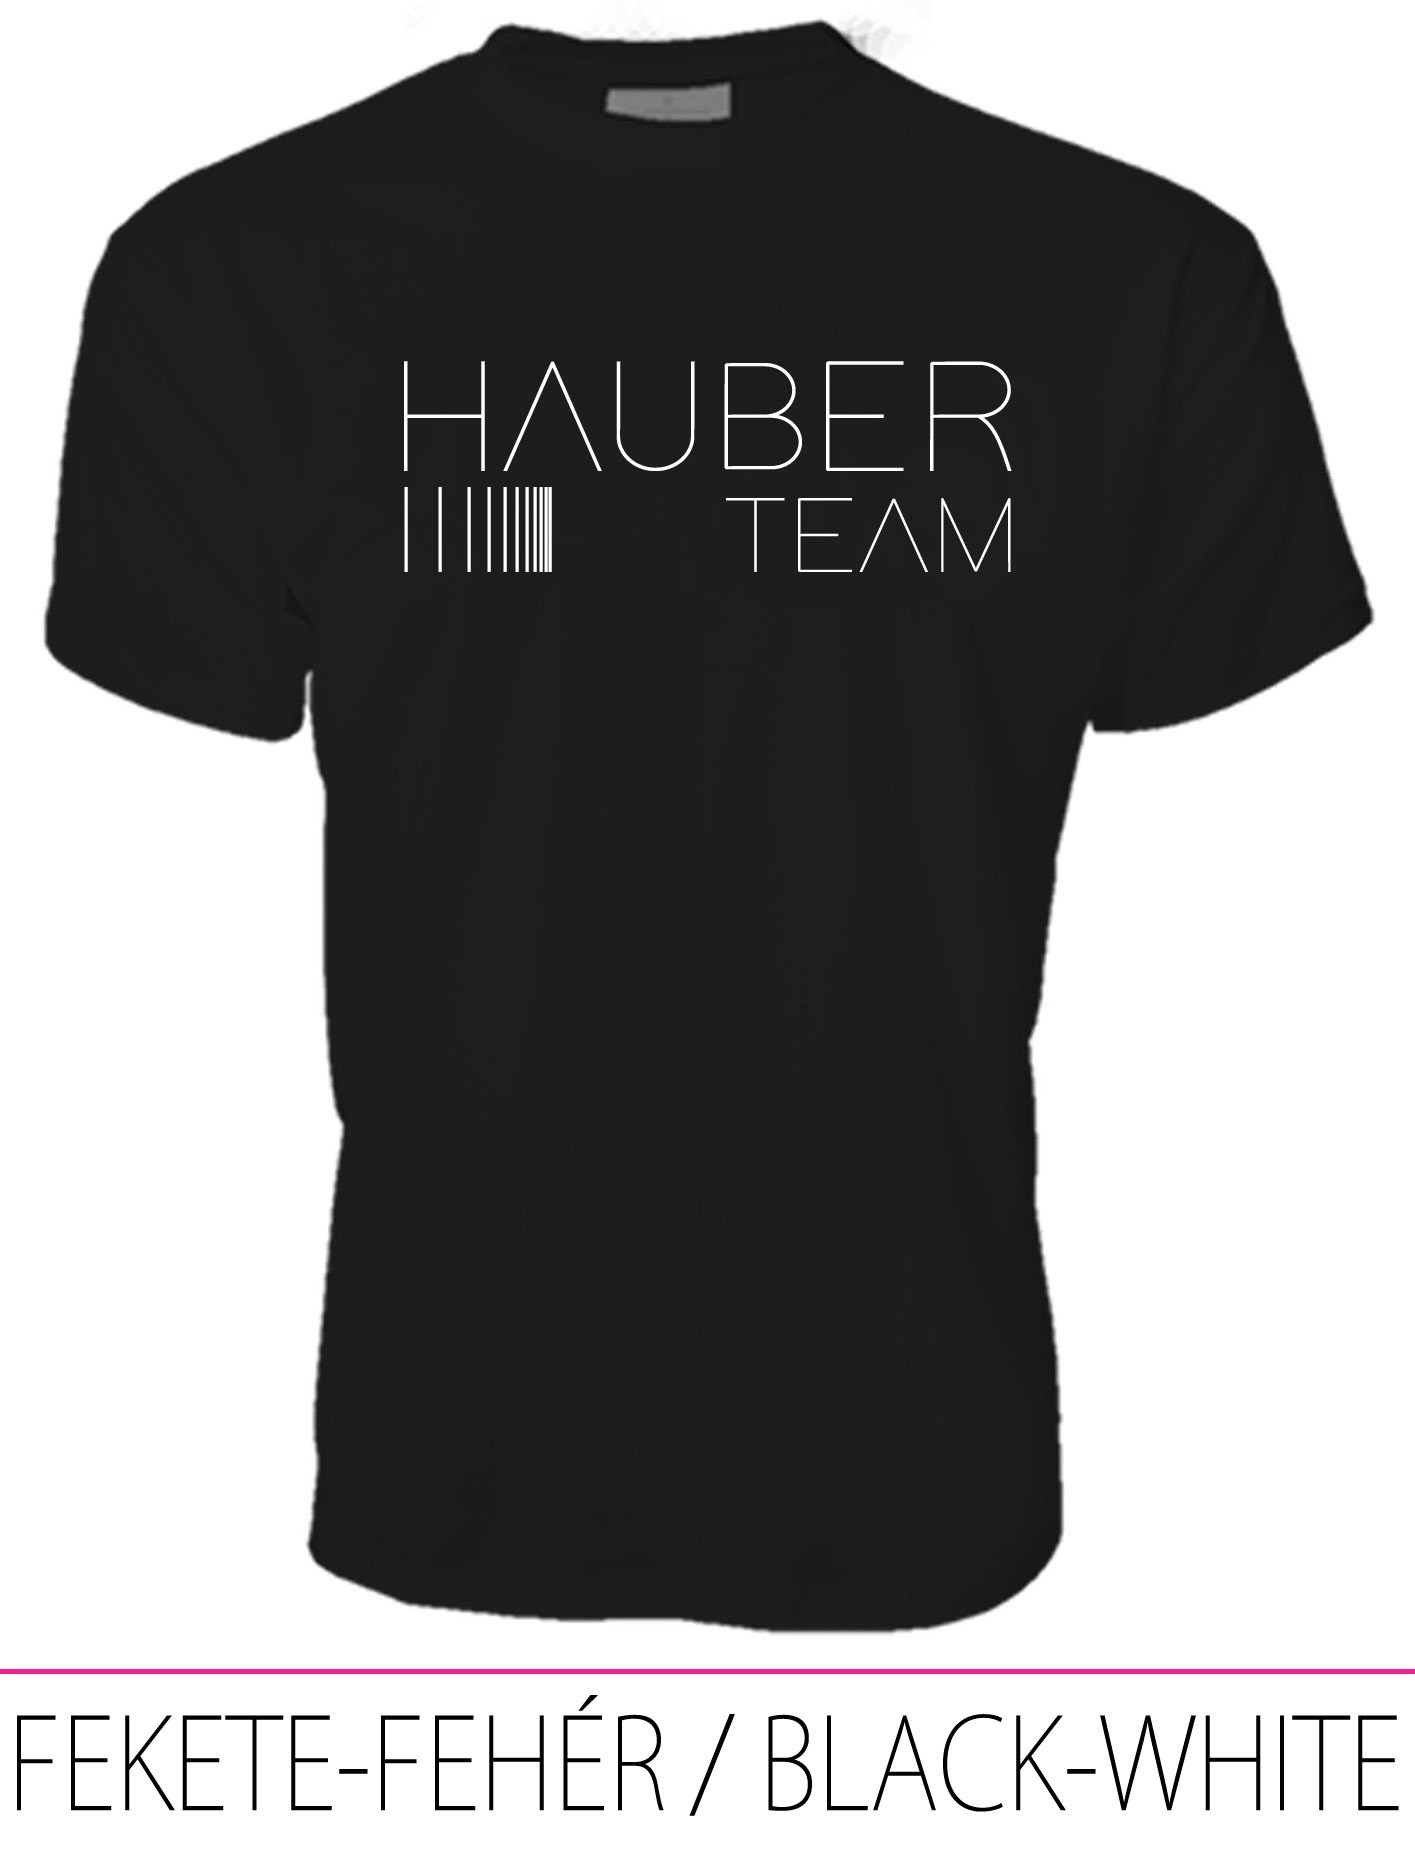 MEN CREW NECK T-SHIRT / HAUBER TEAM BLACK-WHITE